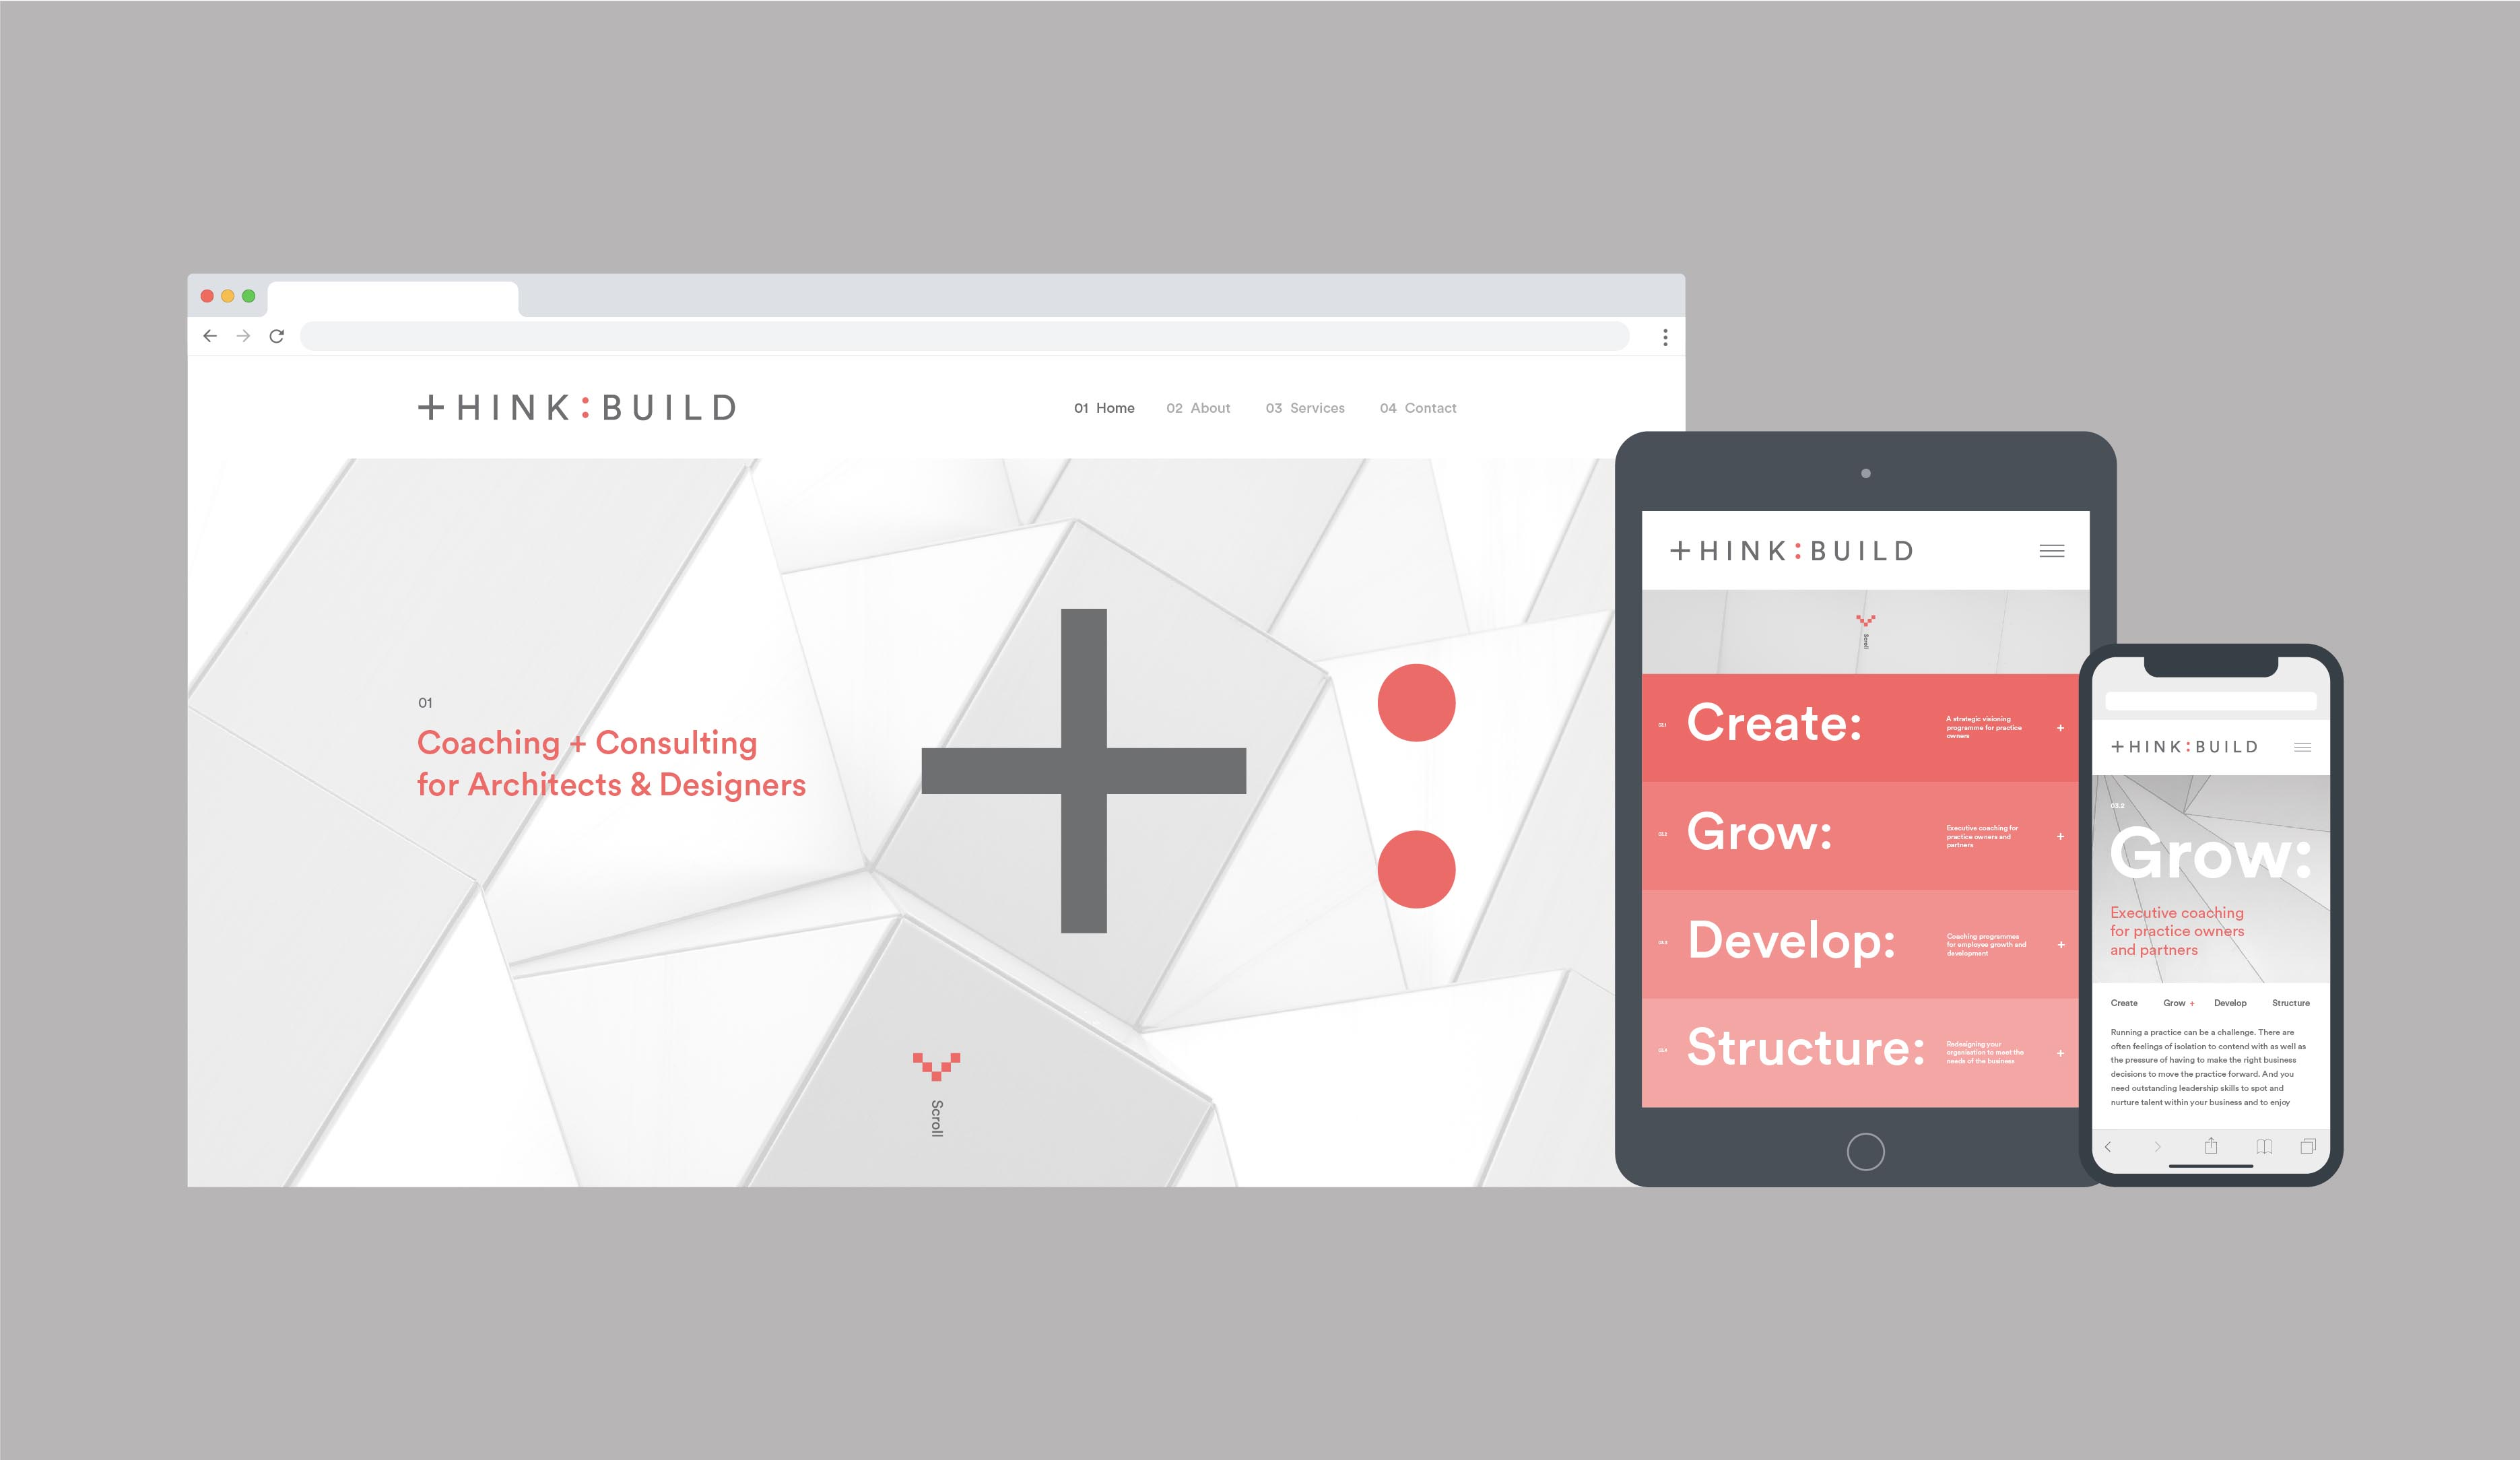 Think:Build brand identity and website design